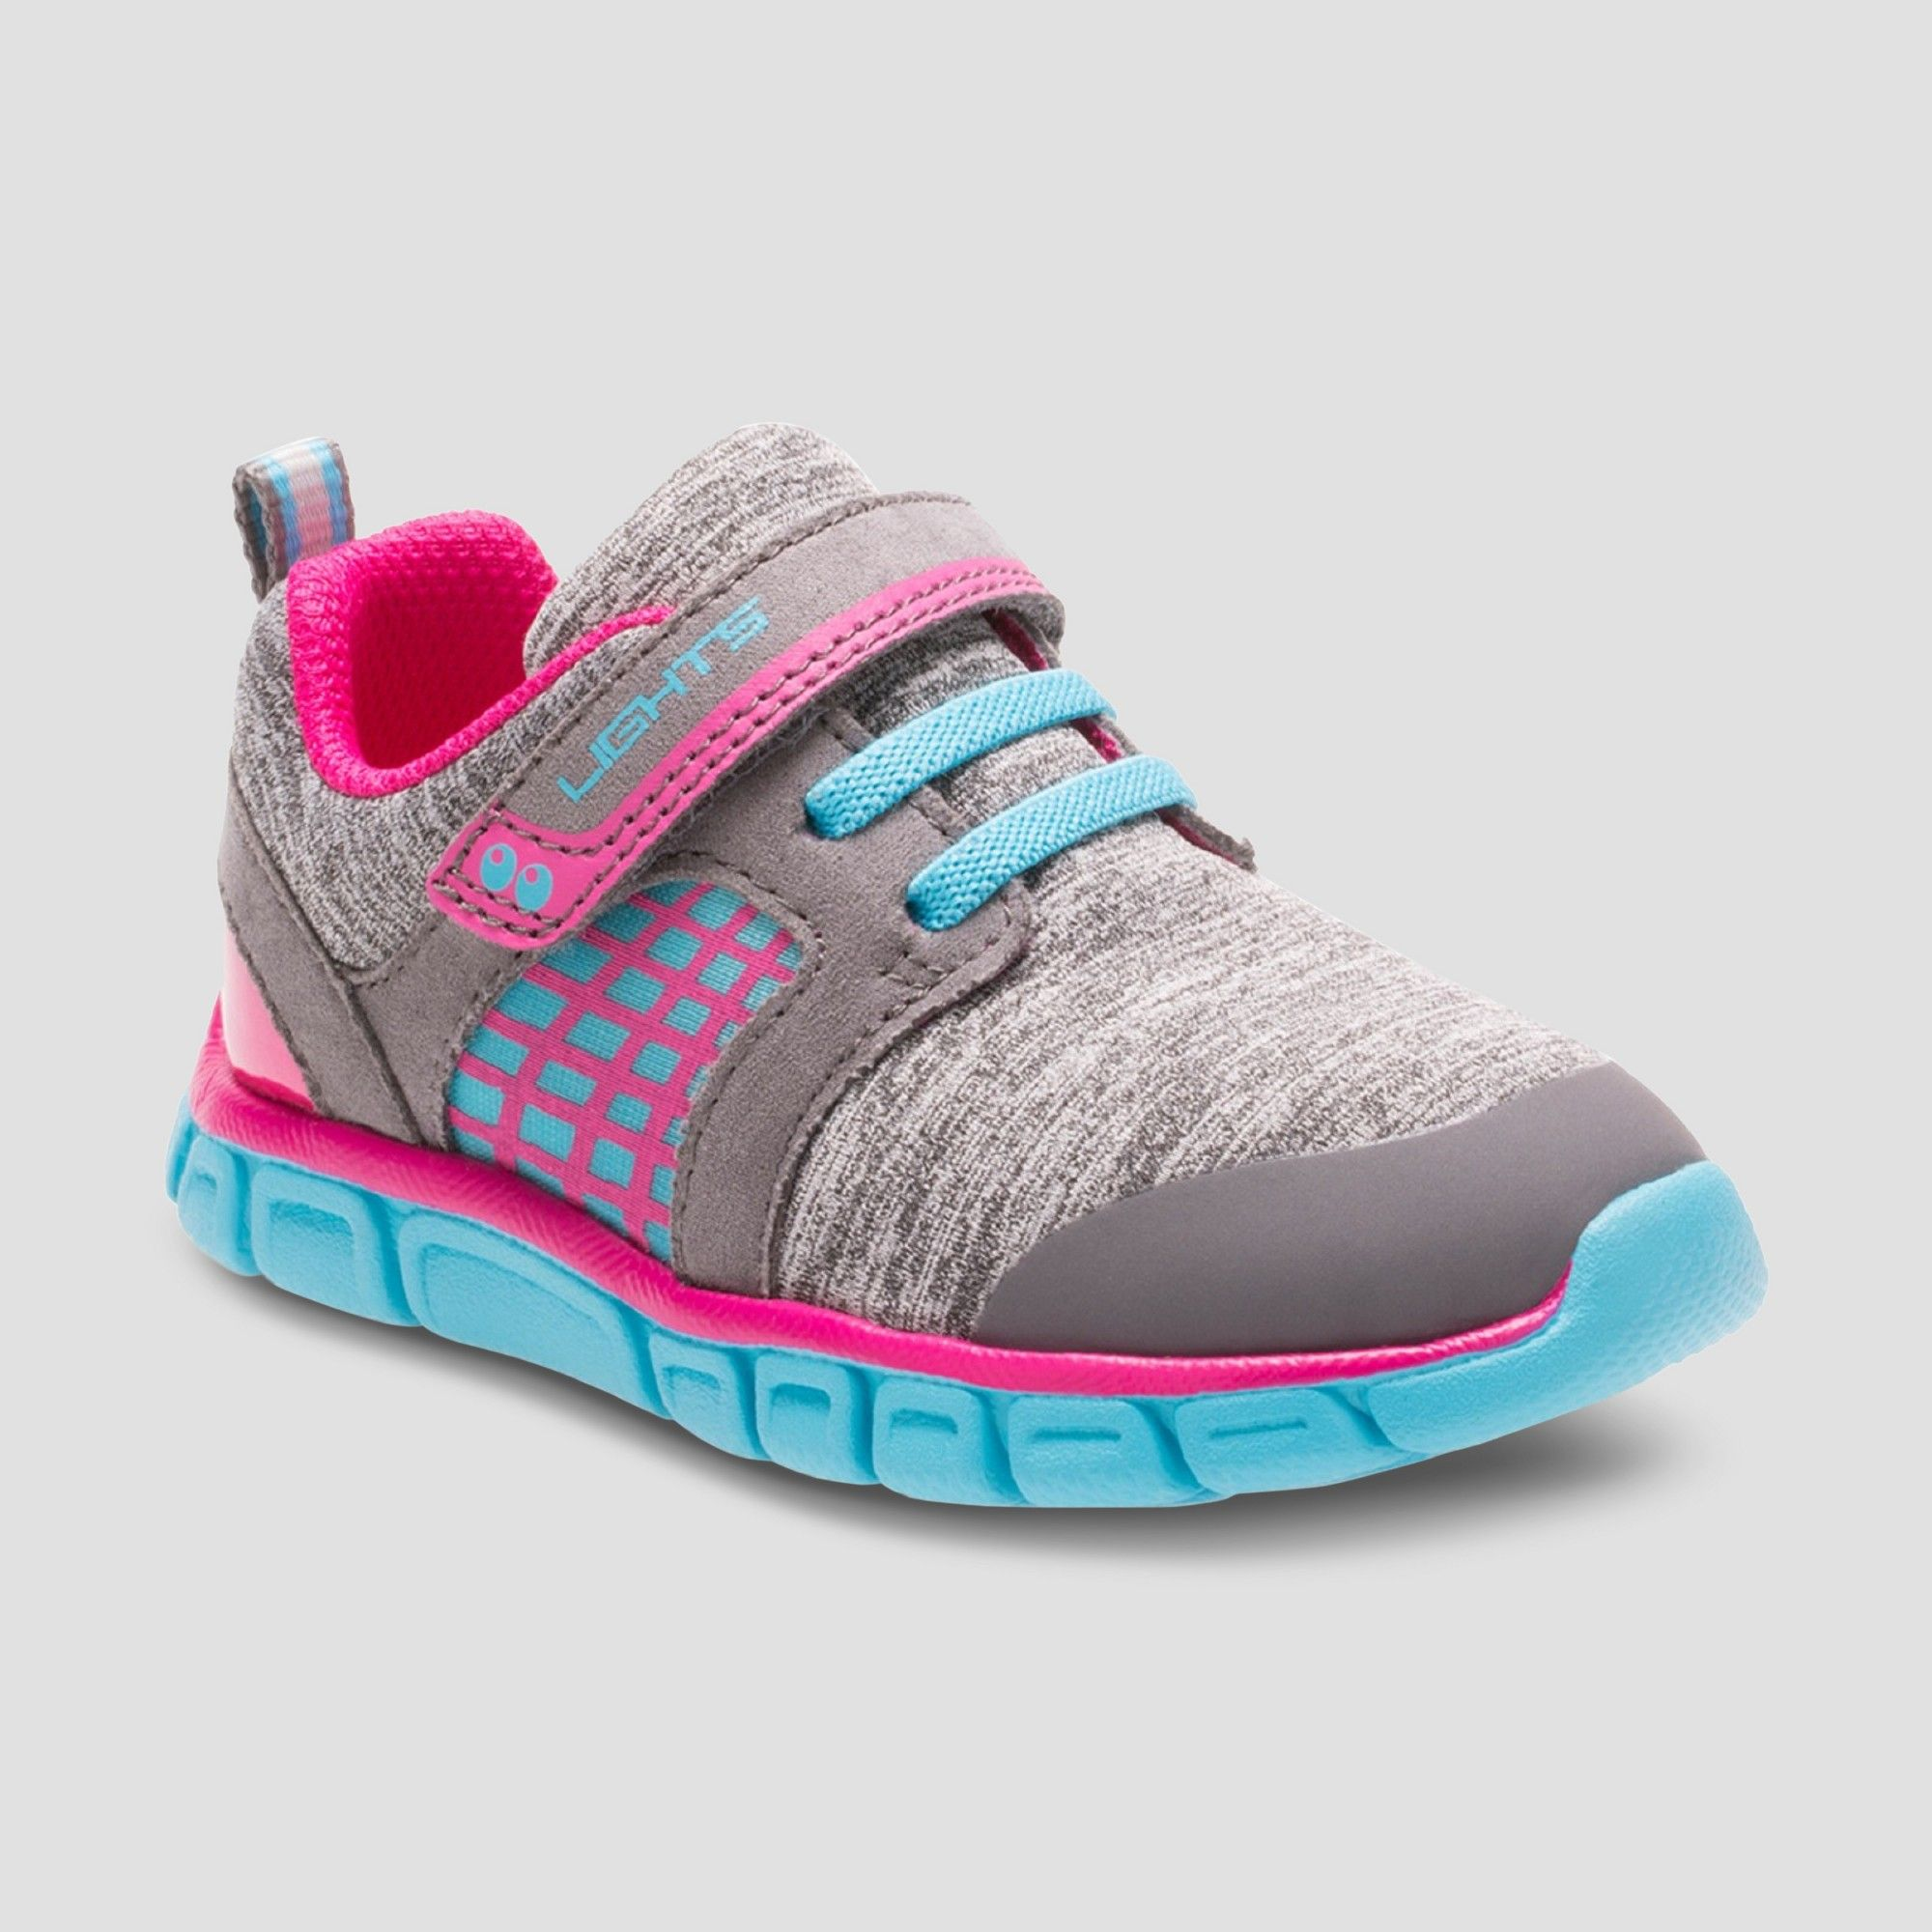 Toddler Girls Surprize by Stride Rite Clarissa Light Up Sneakers